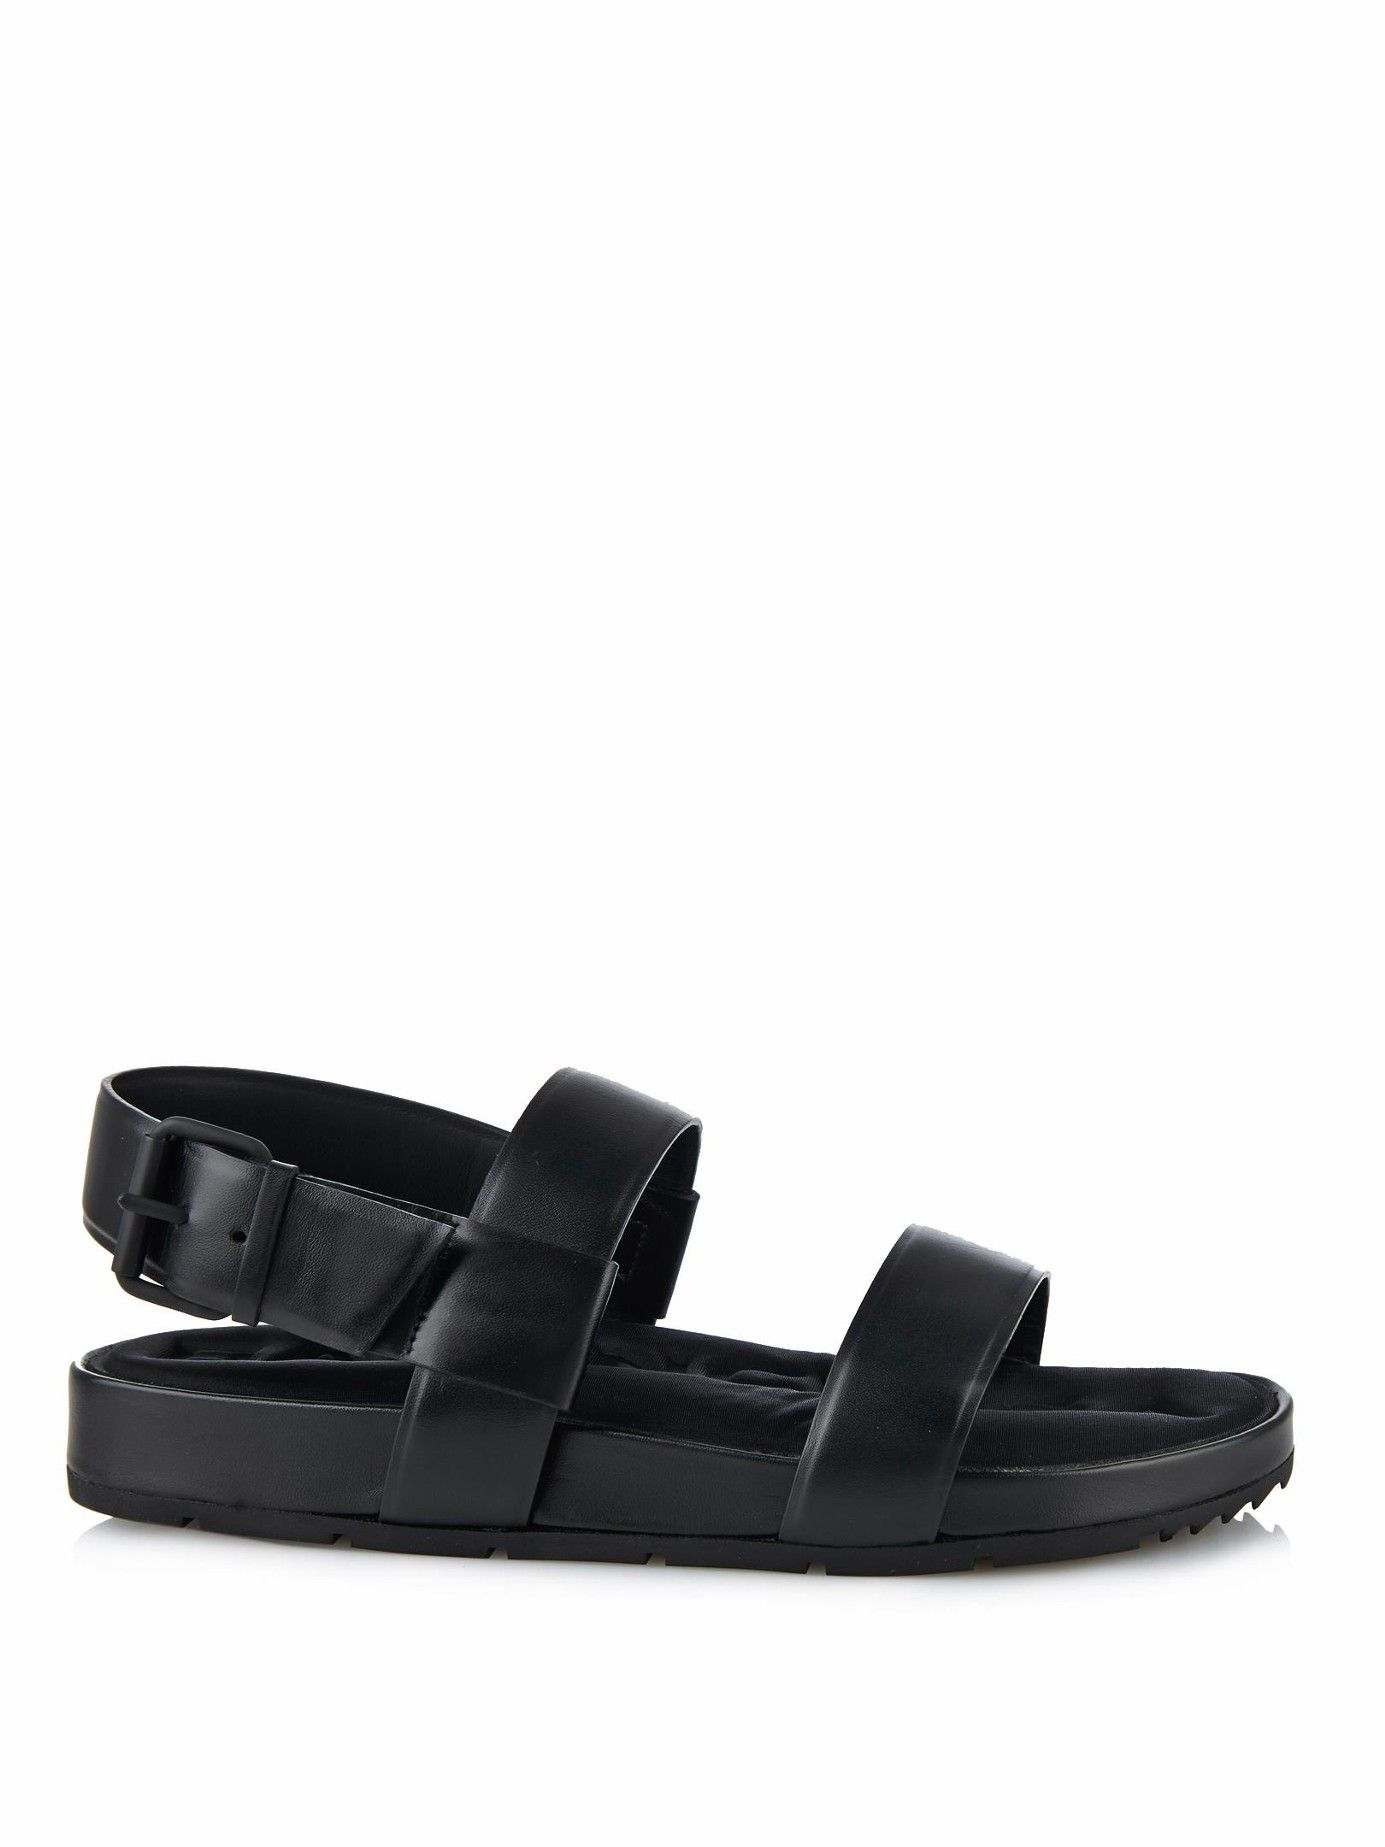 Balenciaga Leather Slingback Sandals with credit card online from china online outlet excellent cheap many kinds of free shipping official site auQeVaEuYY